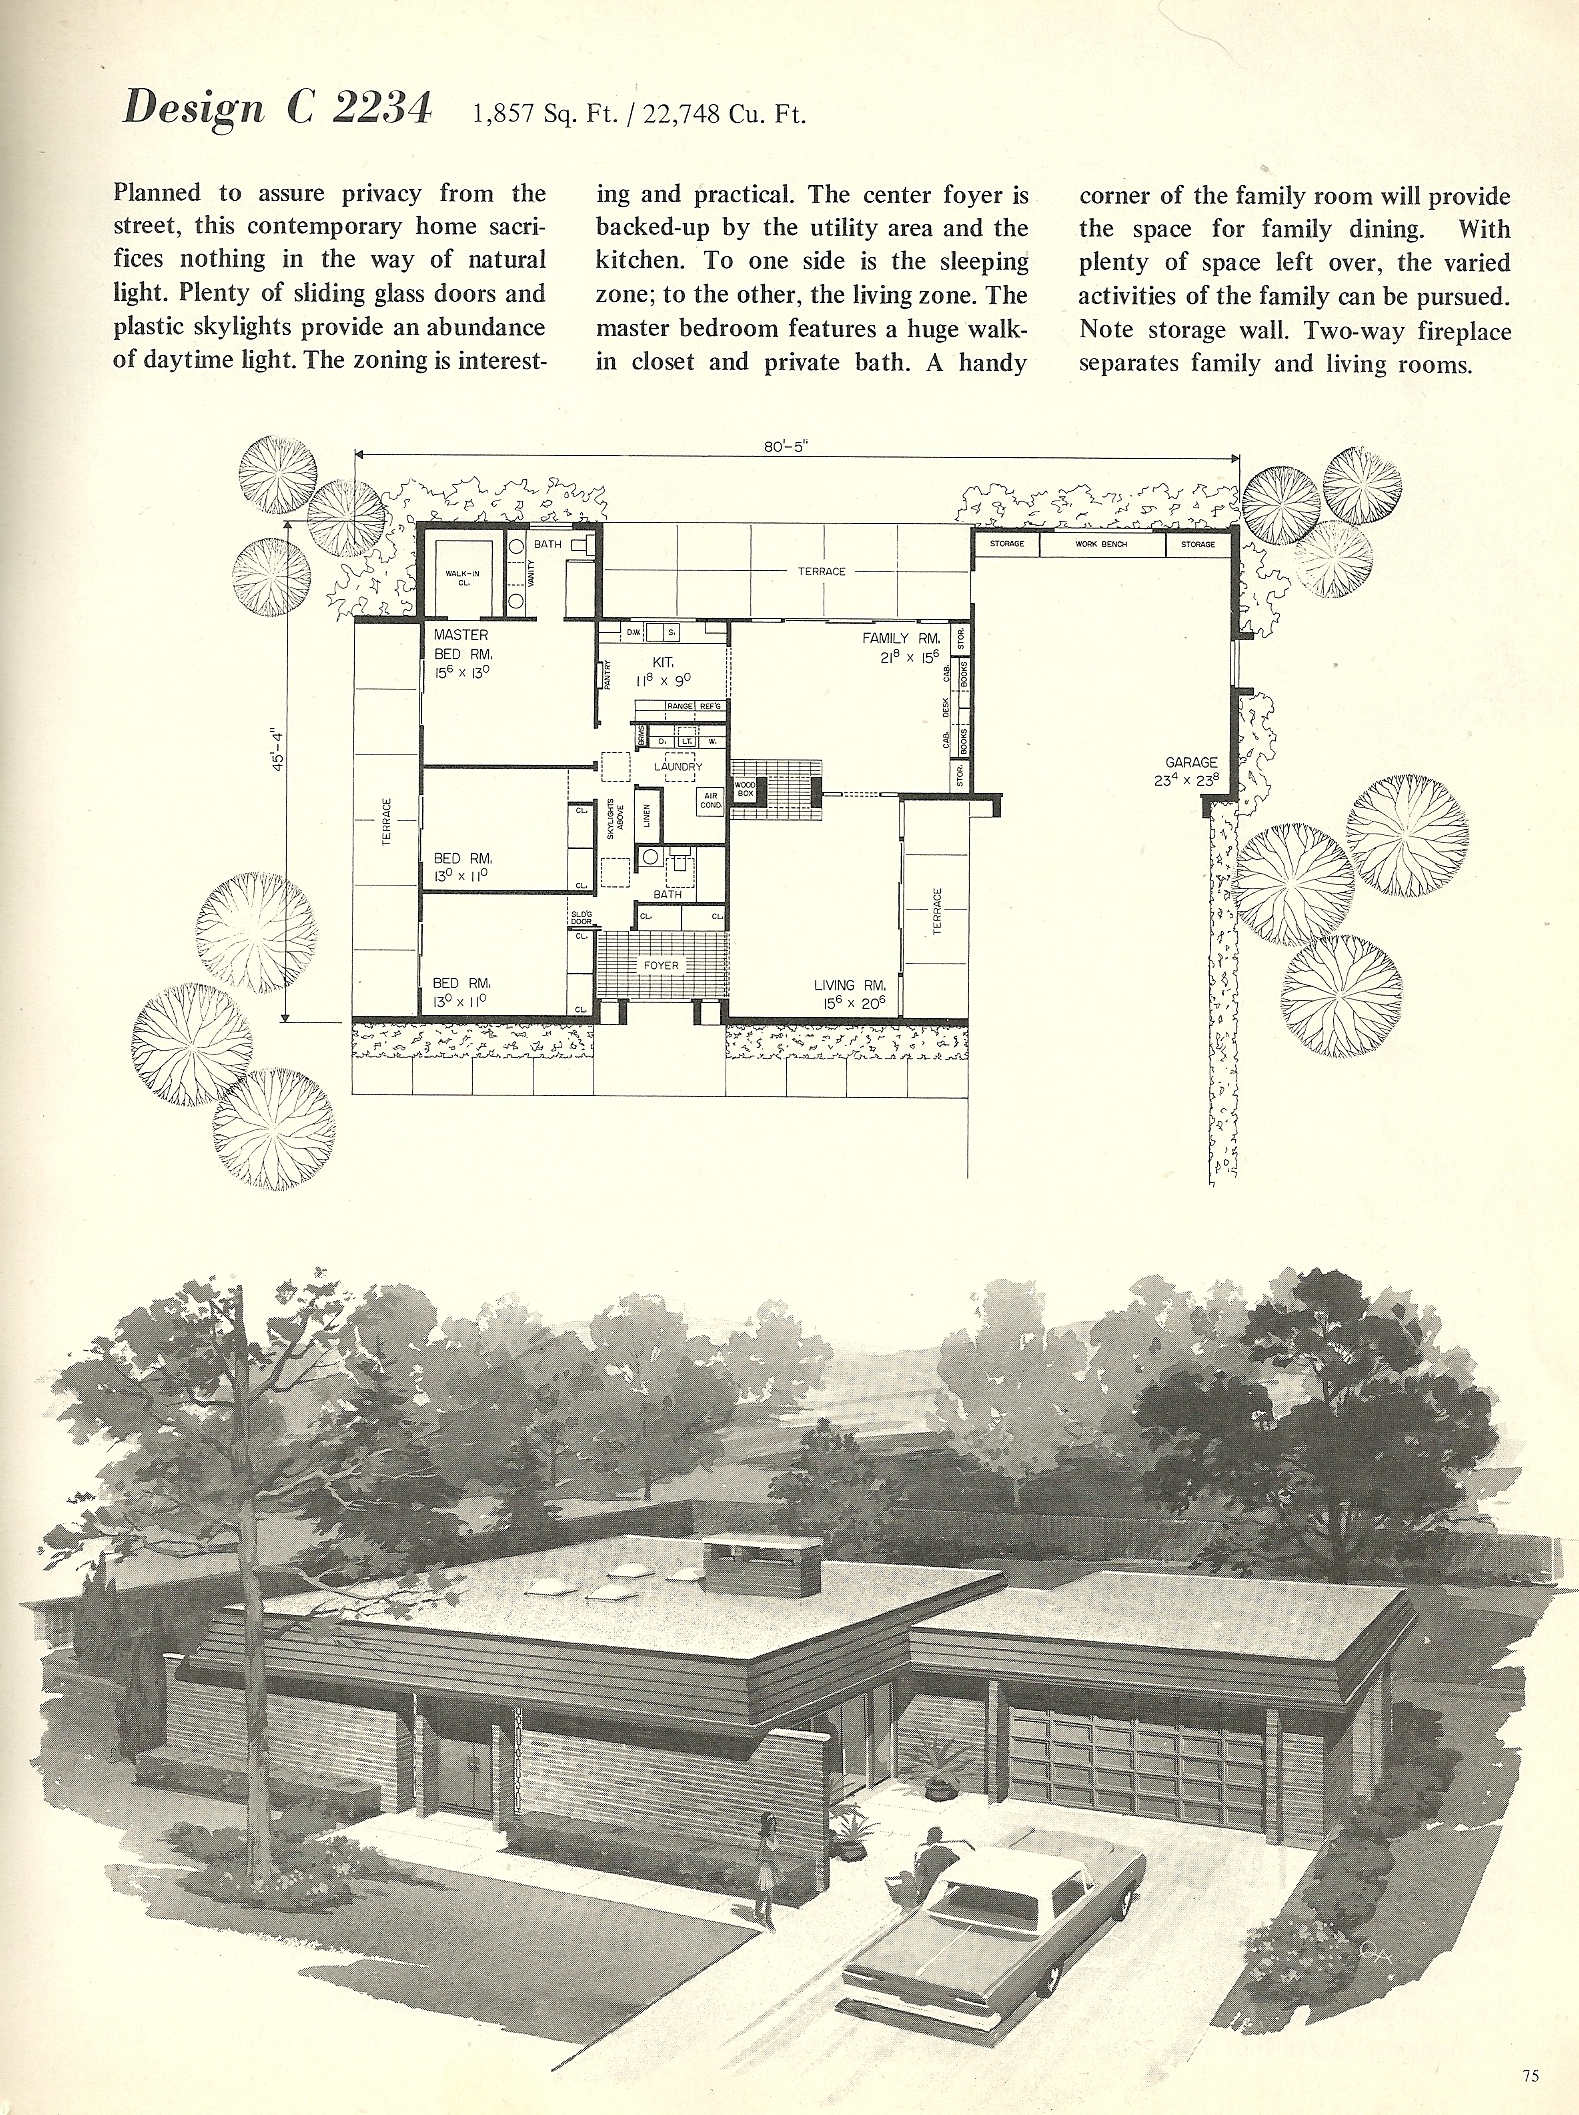 Vintage house plans 2234 antique alter ego for Vintage home plans